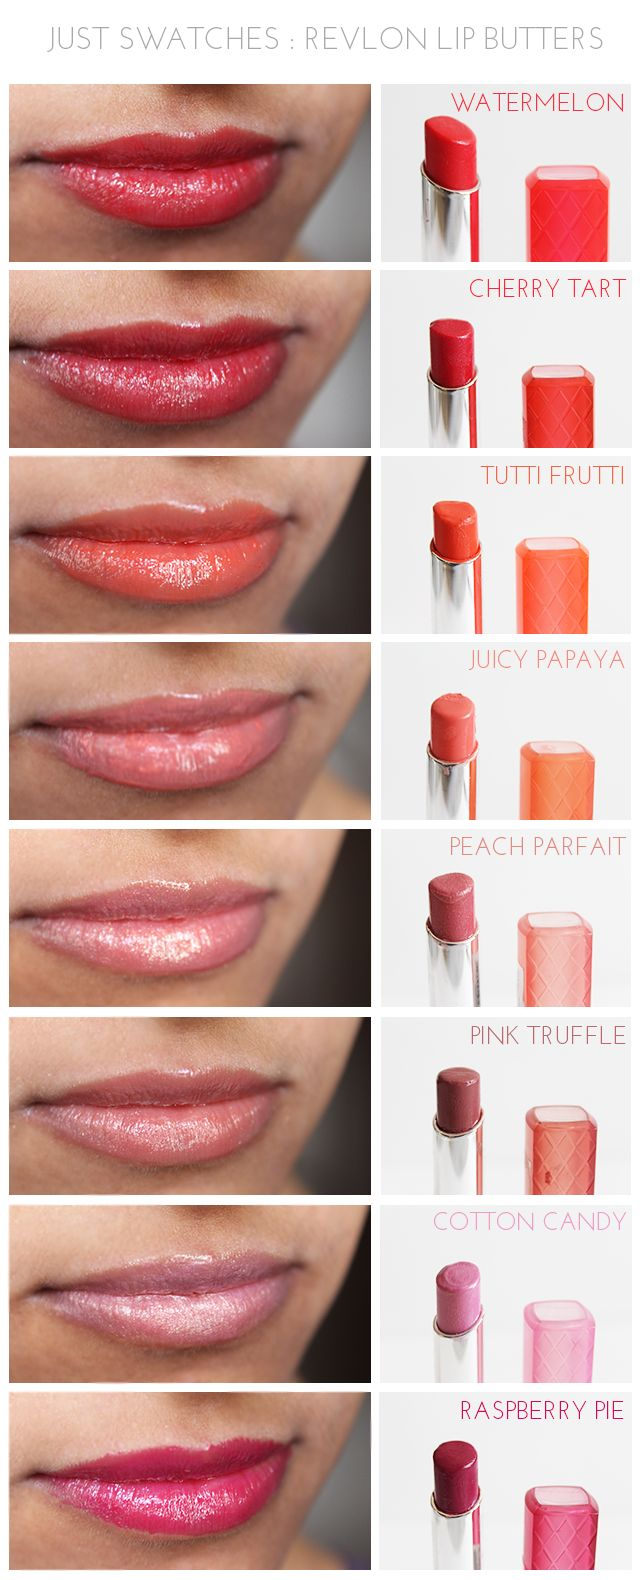 Just Swatches - Revlon Lip Butters